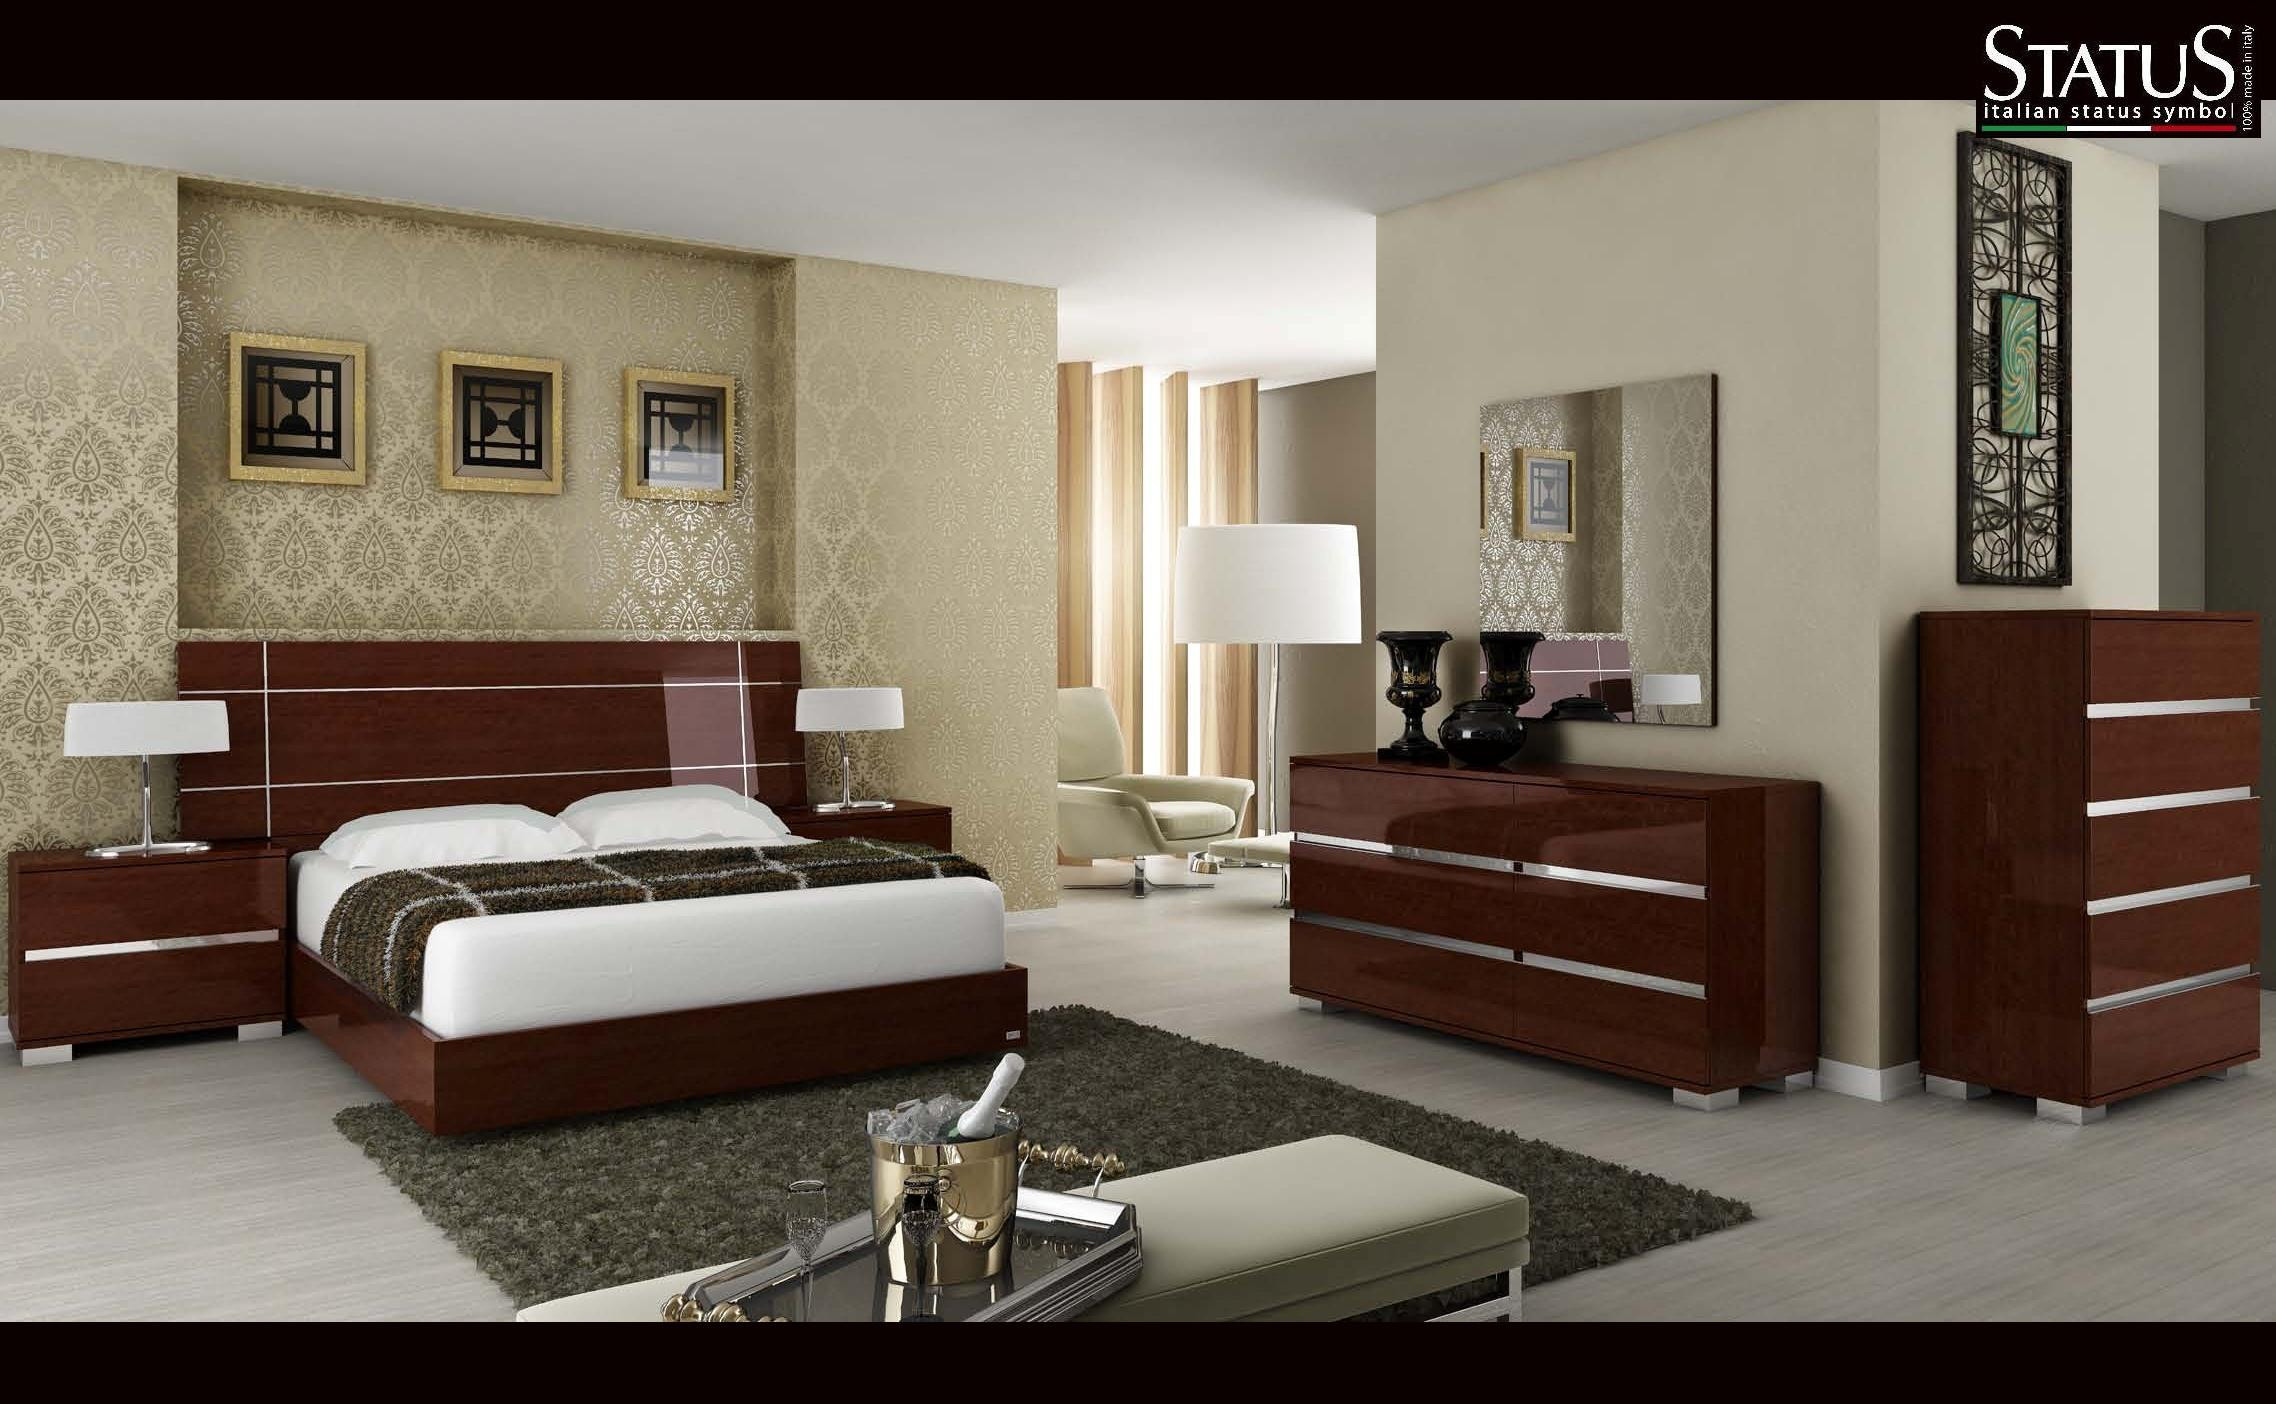 Best ideas about Modern Bedroom Furniture . Save or Pin DREAM KING SIZE MODERN DESIGN BEDROOM SET WALNUT 5 pc Now.